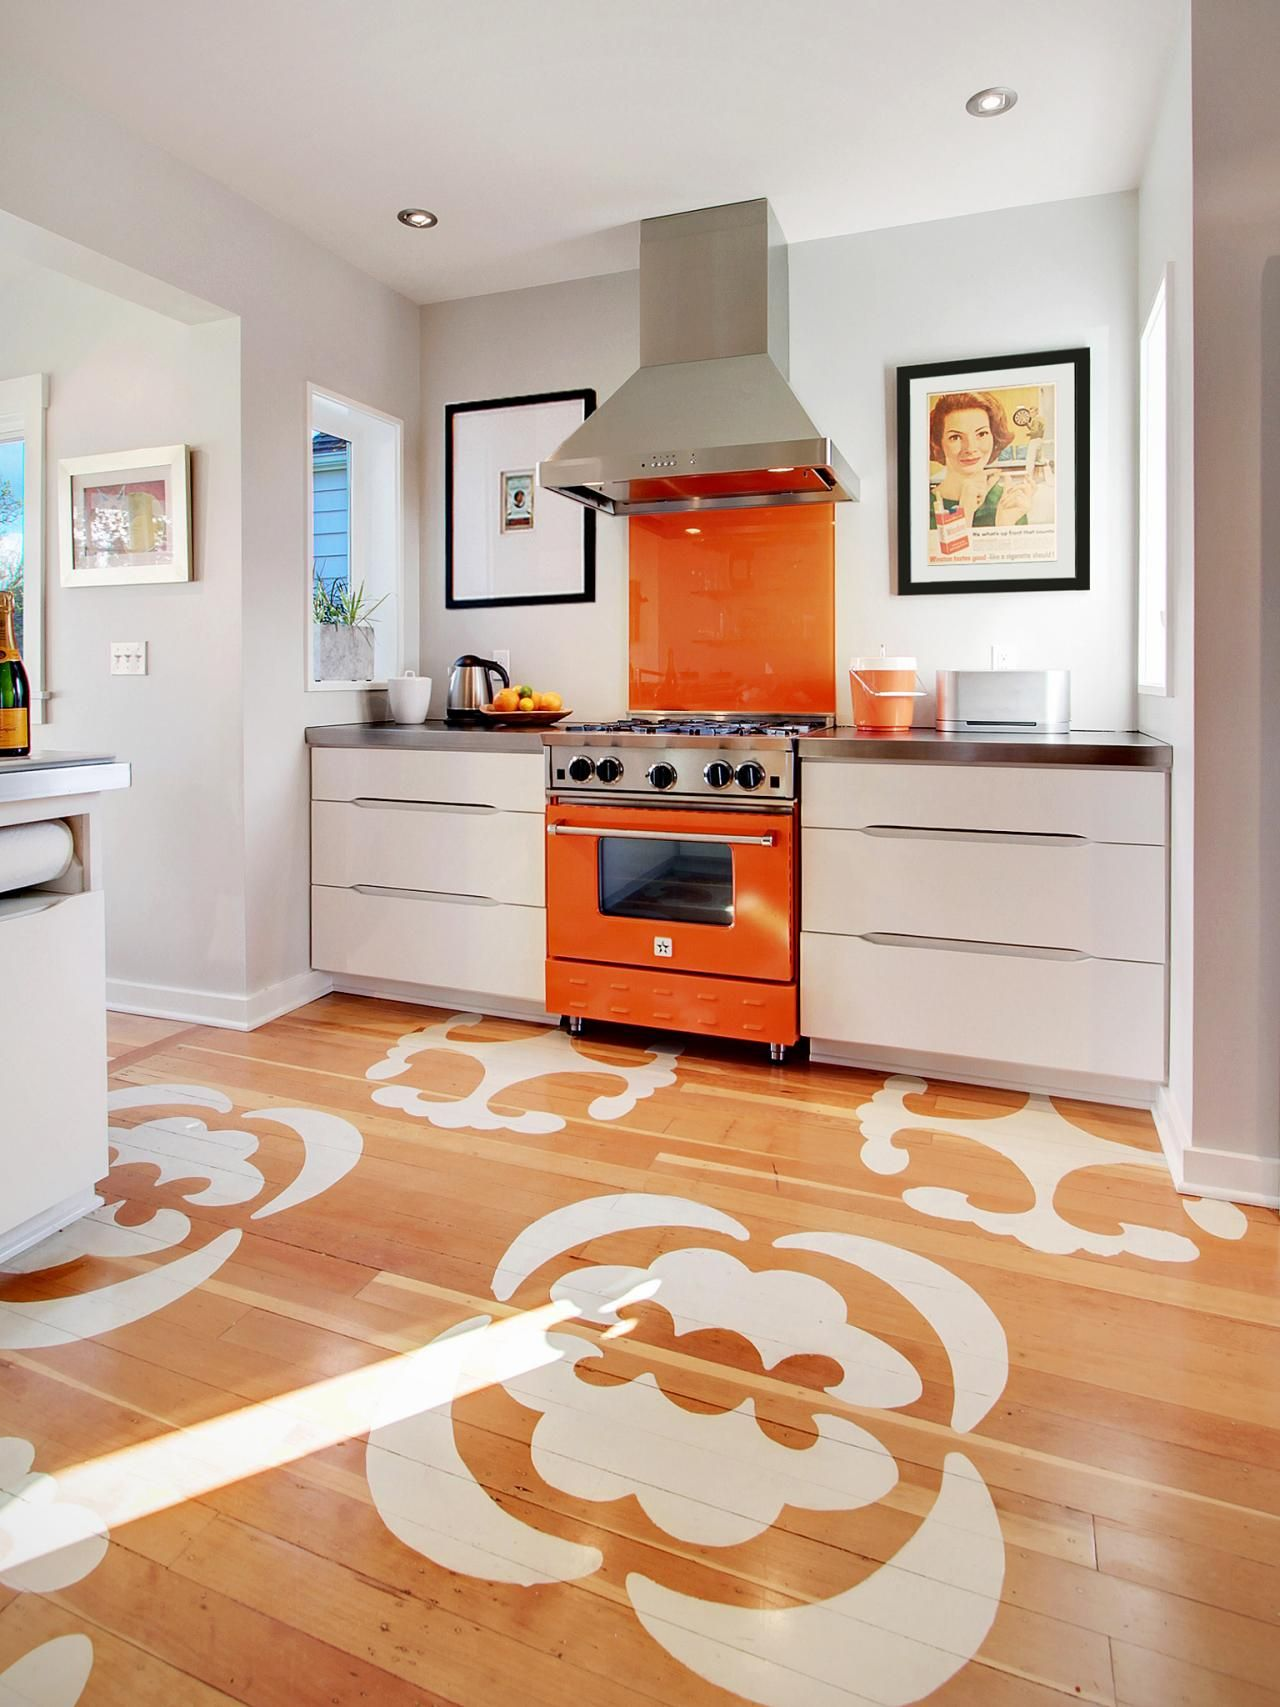 useful tips for selecting kitchen flooring flooring for kitchen An Easy Guide To Kitchen Flooring